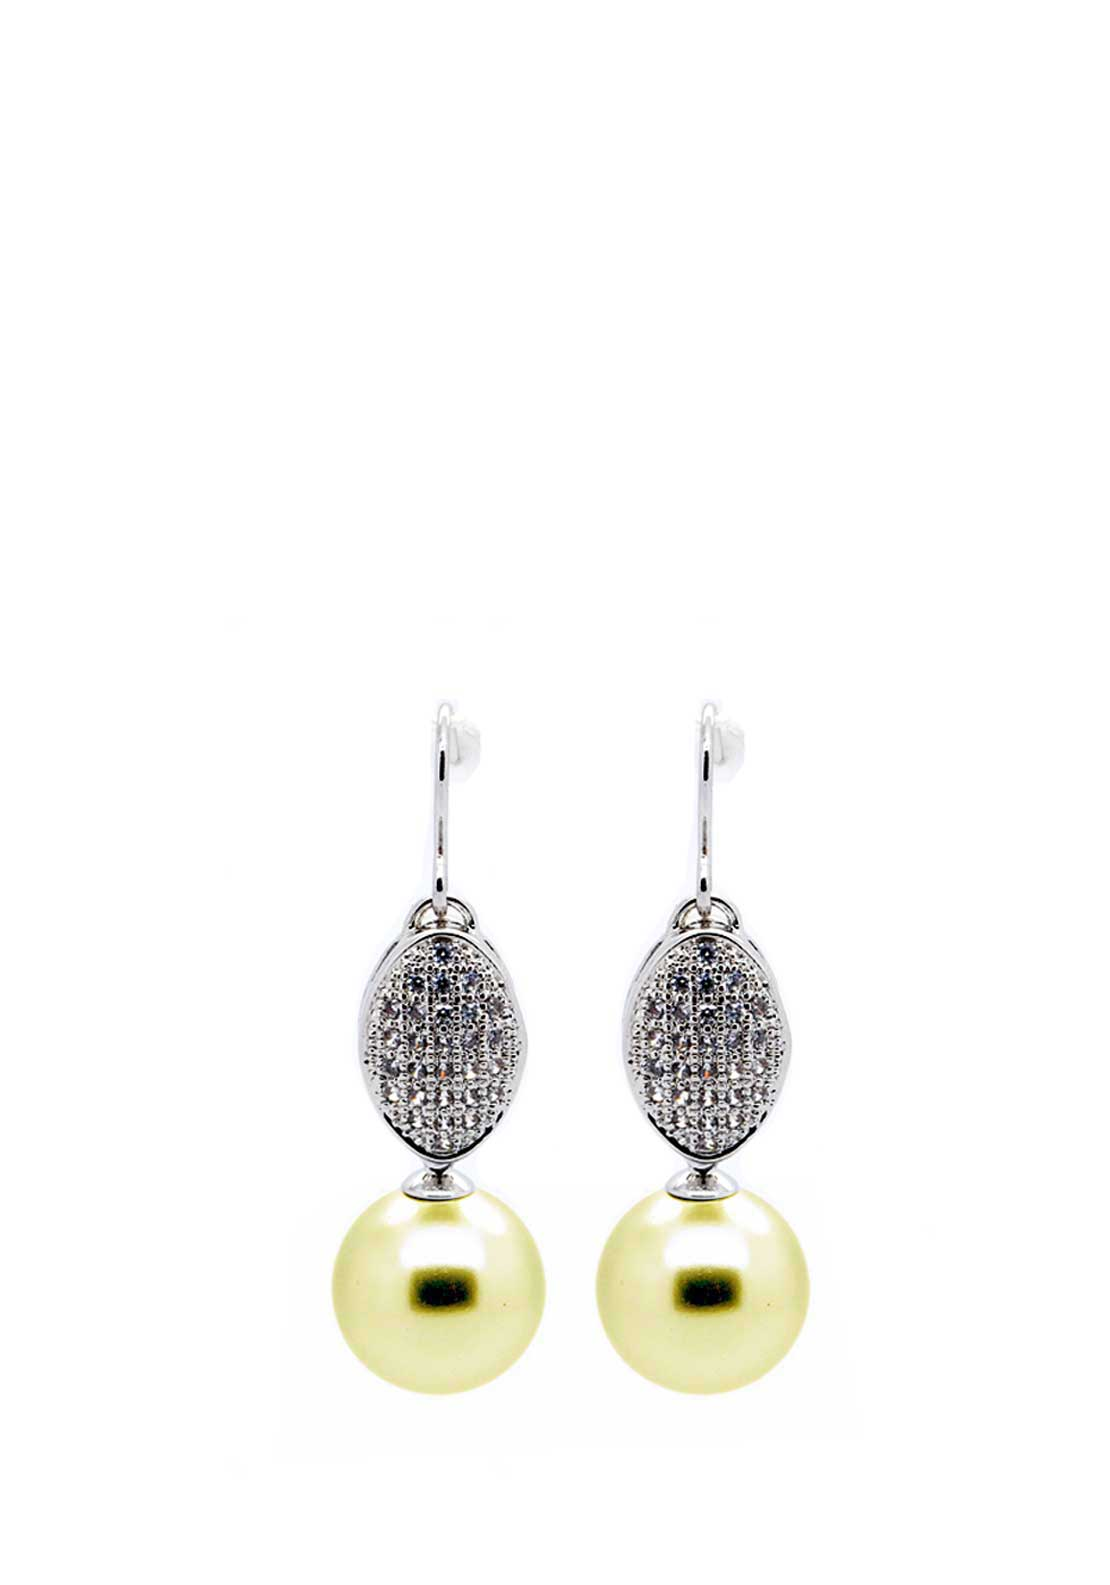 Absolute Jewellery Pave Set Natural Pearl Drop Earrings, Natural